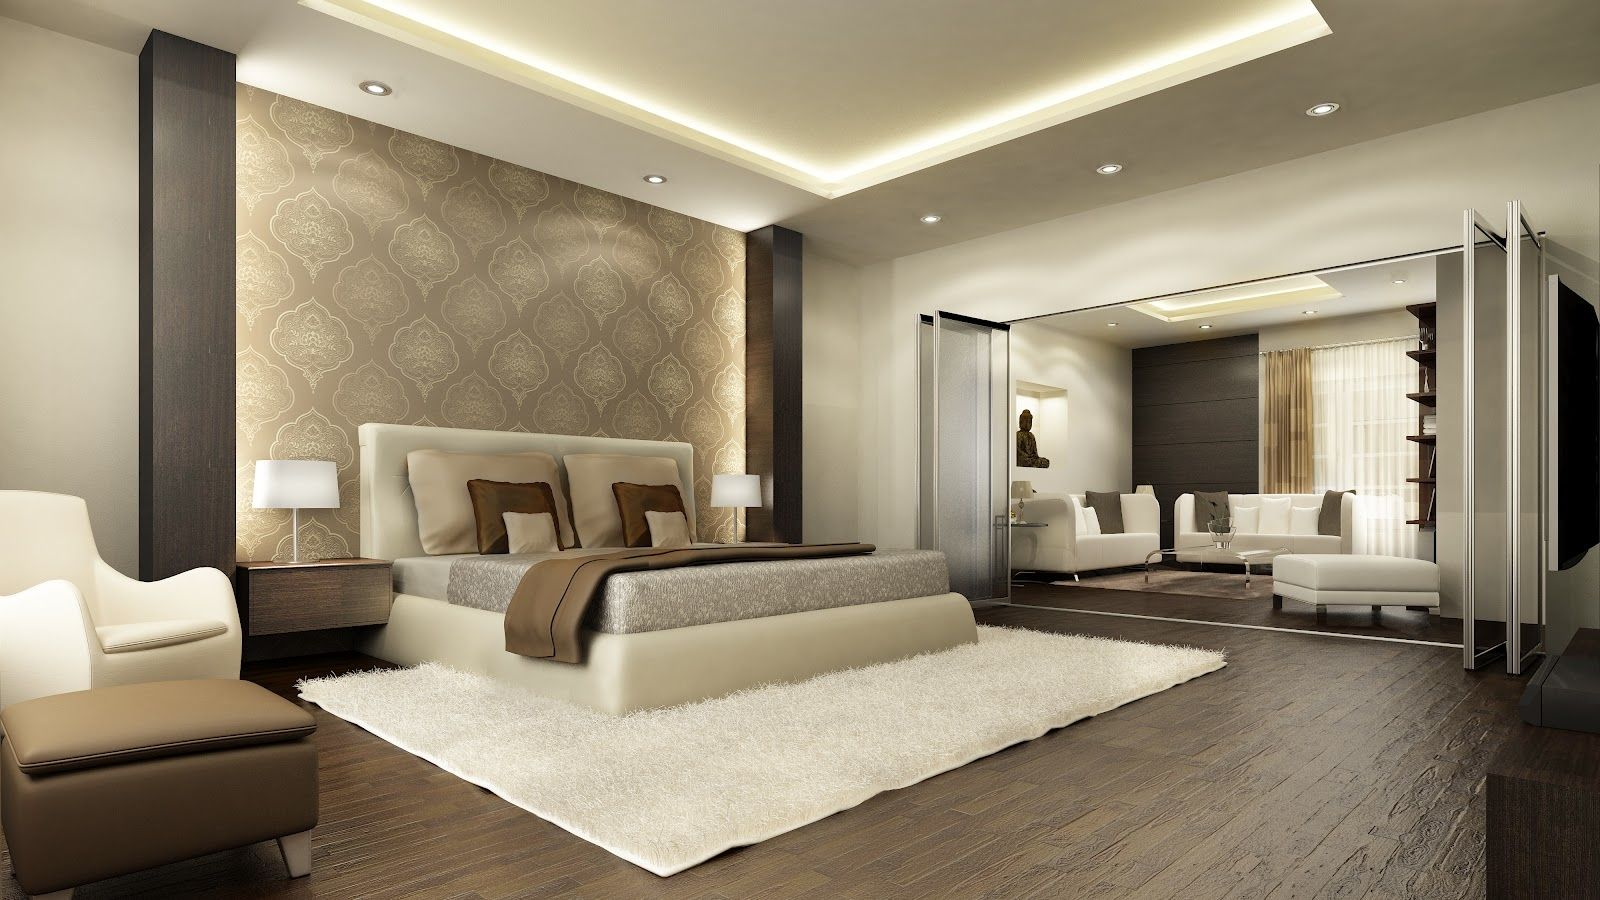 Bedroom interior sophisticated penthouse master bedroom for Big bedroom interior design